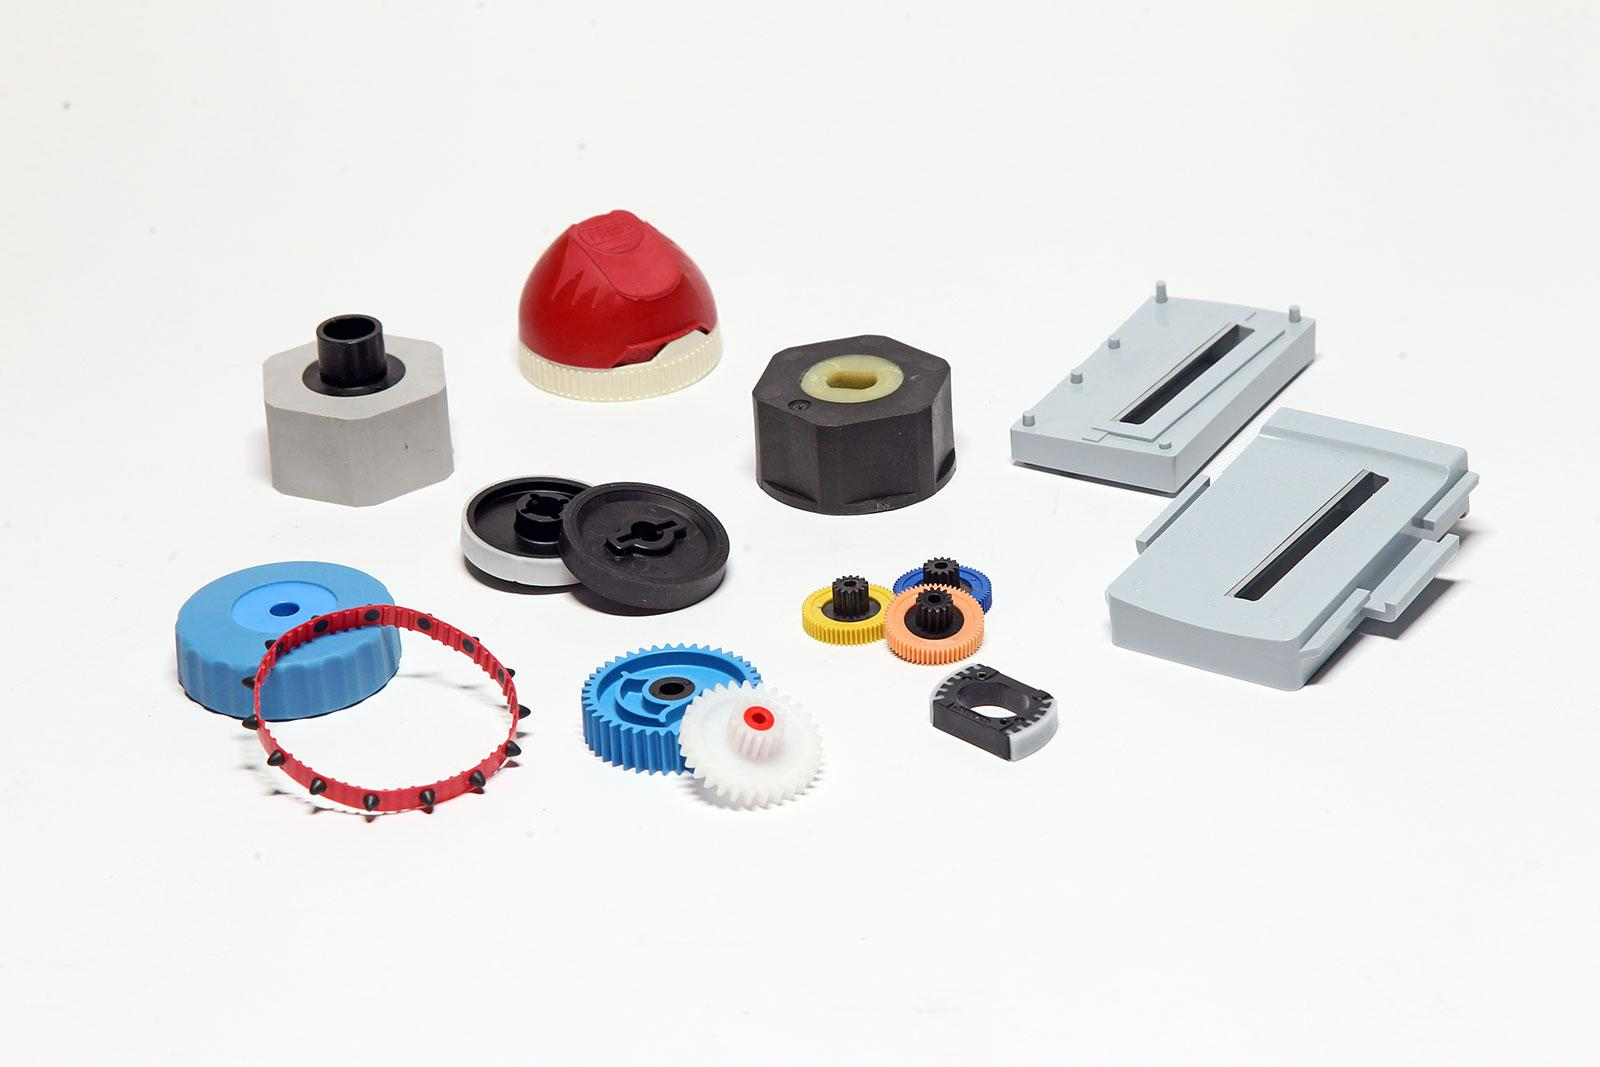 Seitz two-shot injection molding products